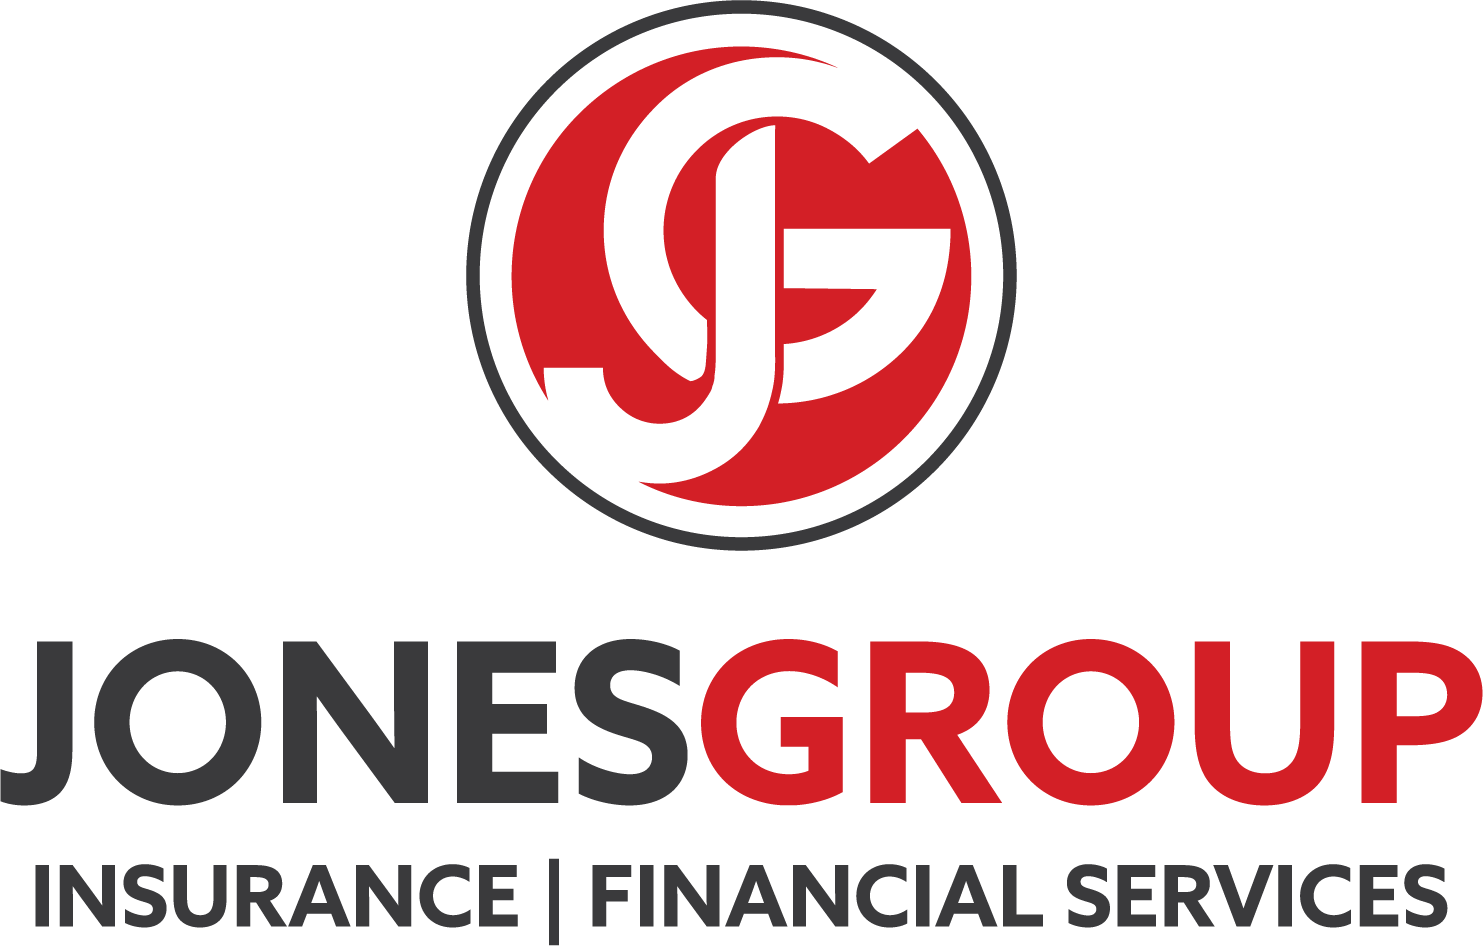 Jones Group Insurance and Financial Services Slide Image